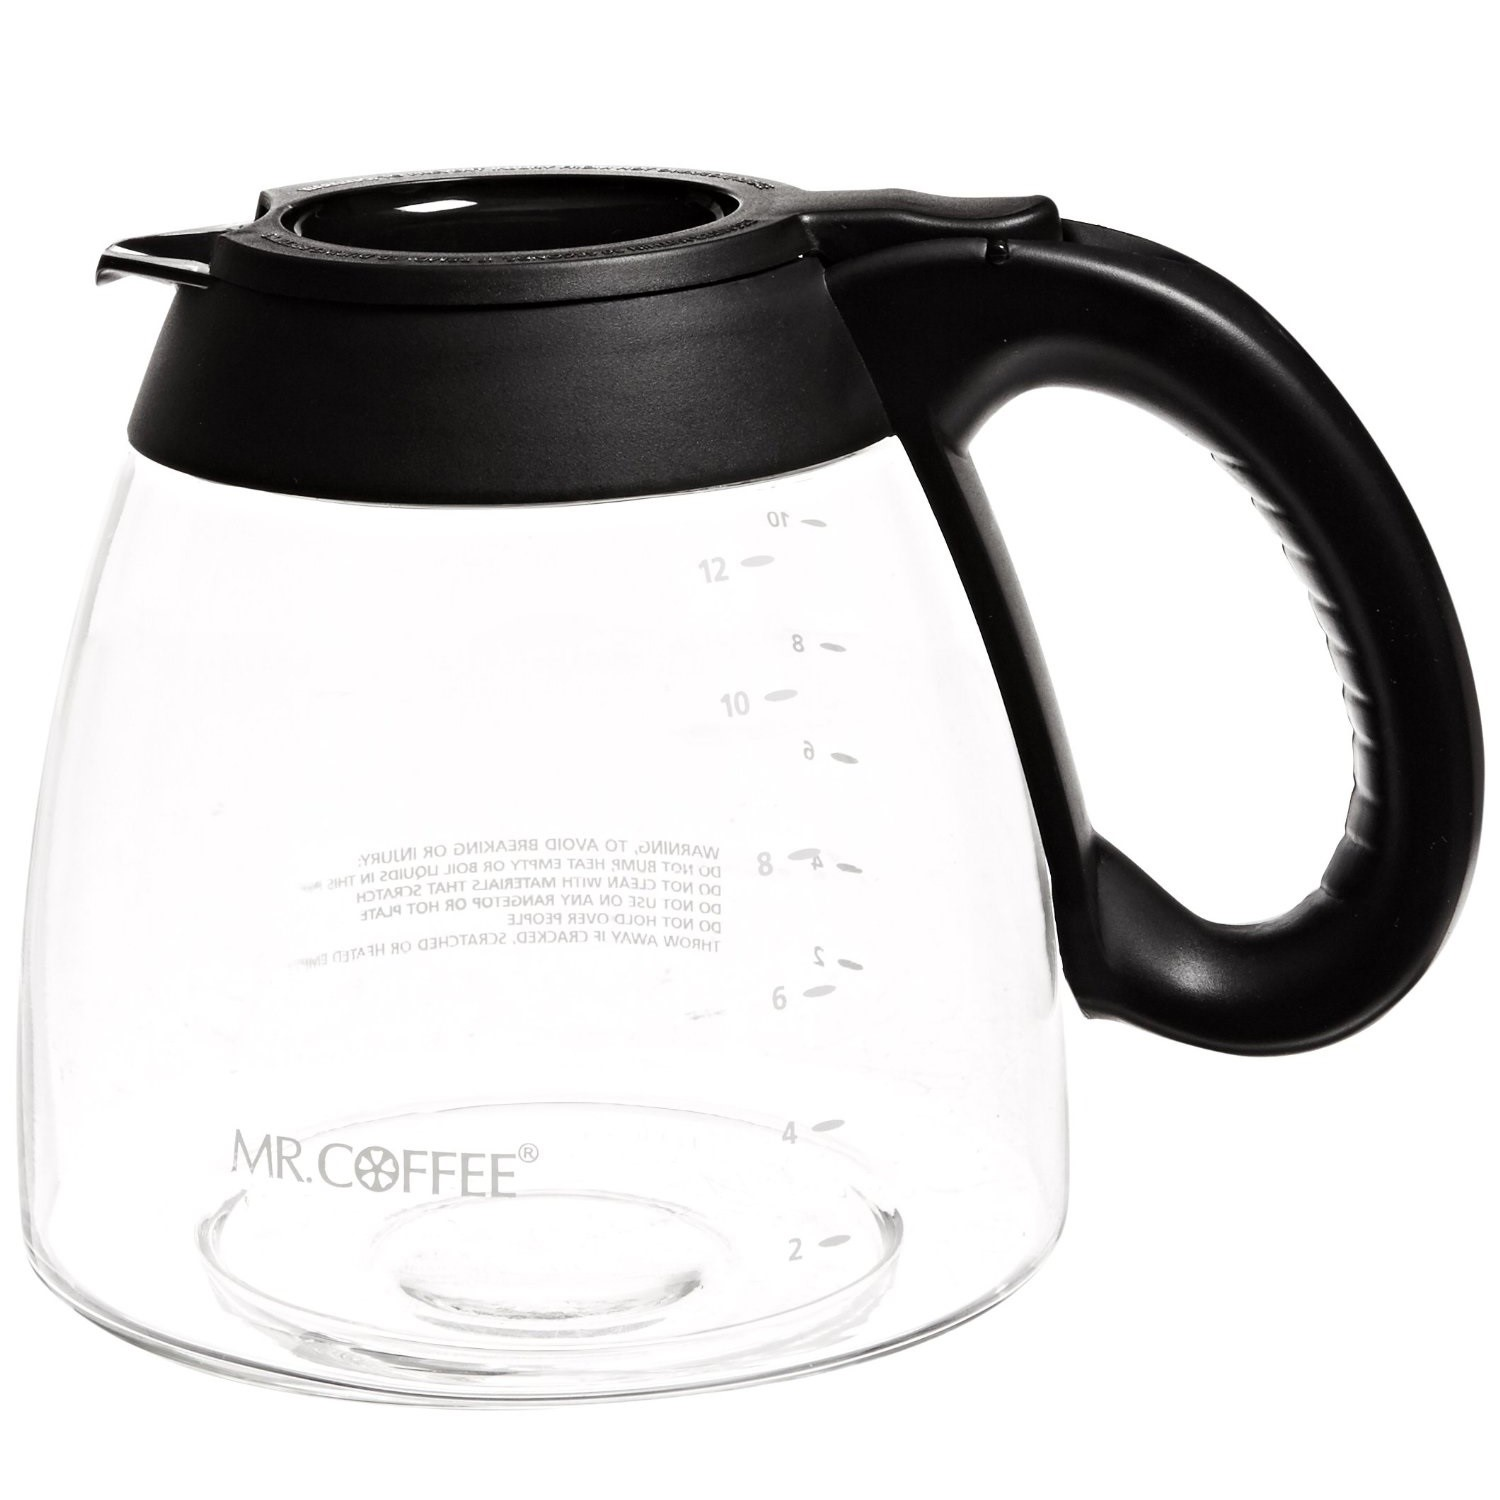 Mr. Coffee 12-Cup Replacement Coffee Carafe (ISD13)